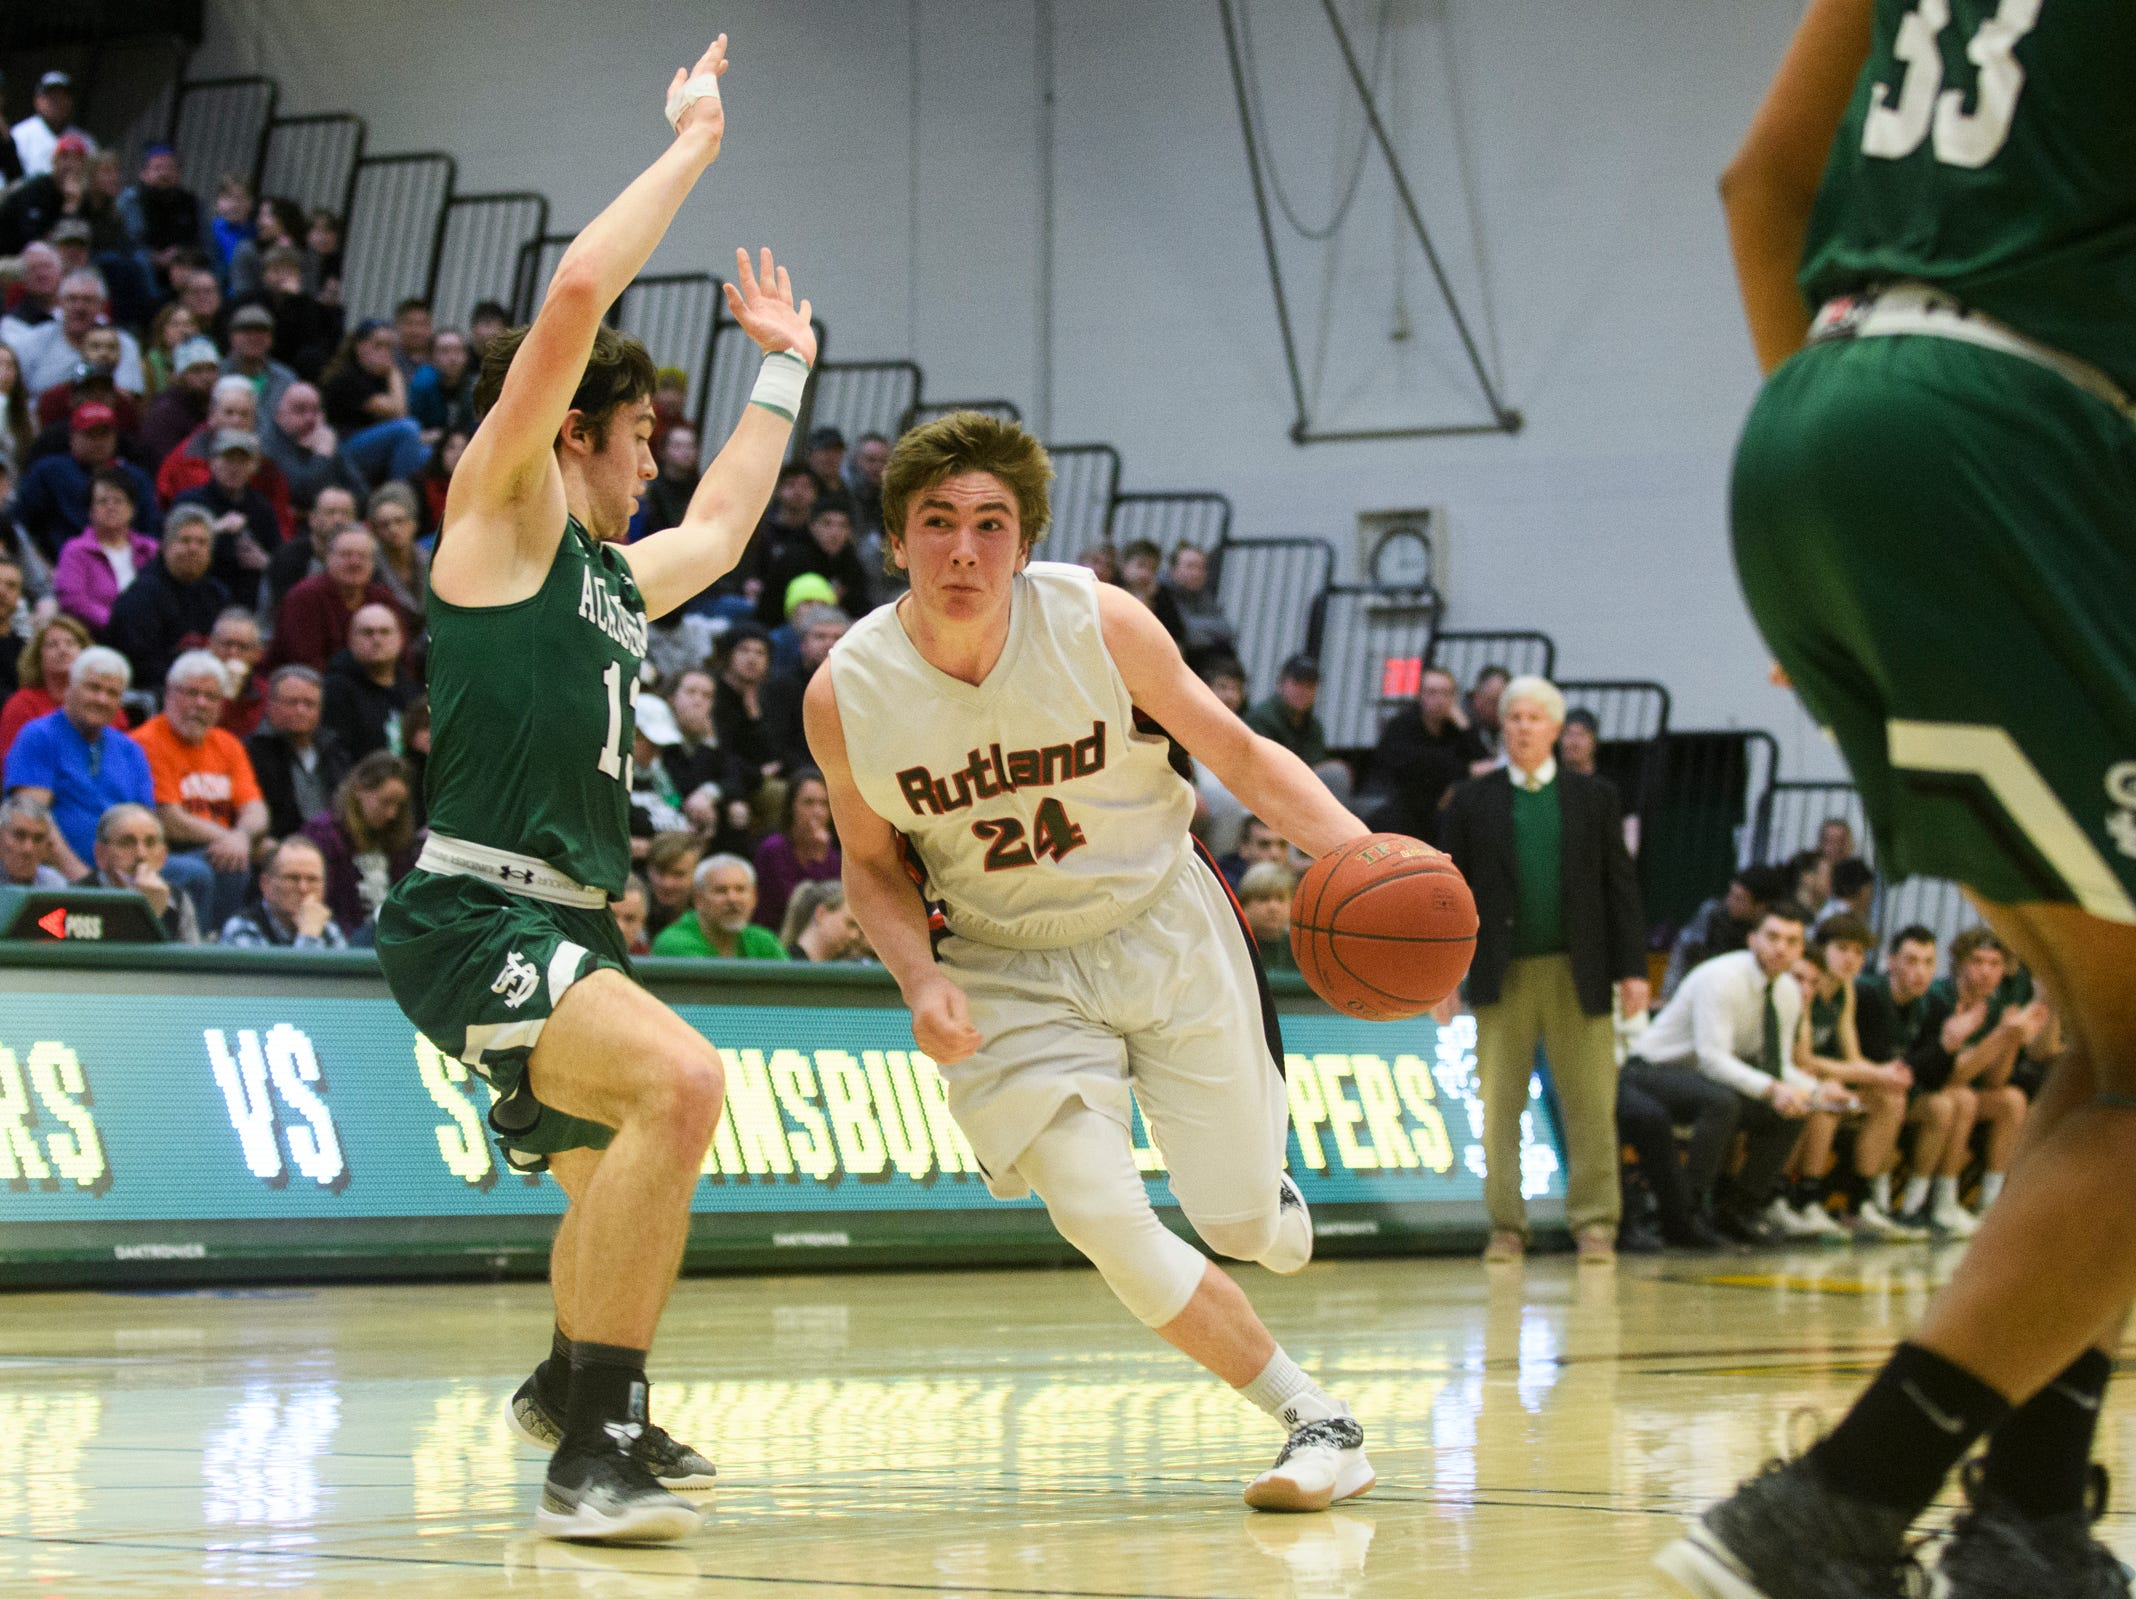 Rutland's Jacob Lorman (240 drives to the hoop past St. Johnsbury's Alex Carlisle (13) during the DI boys basketball championship game between the St. Johnsbury Hilltoppers and the Rutland Raiders at Patrick Gym on Sunday afternoon March 17, 2019 in Burlington, Vermont.